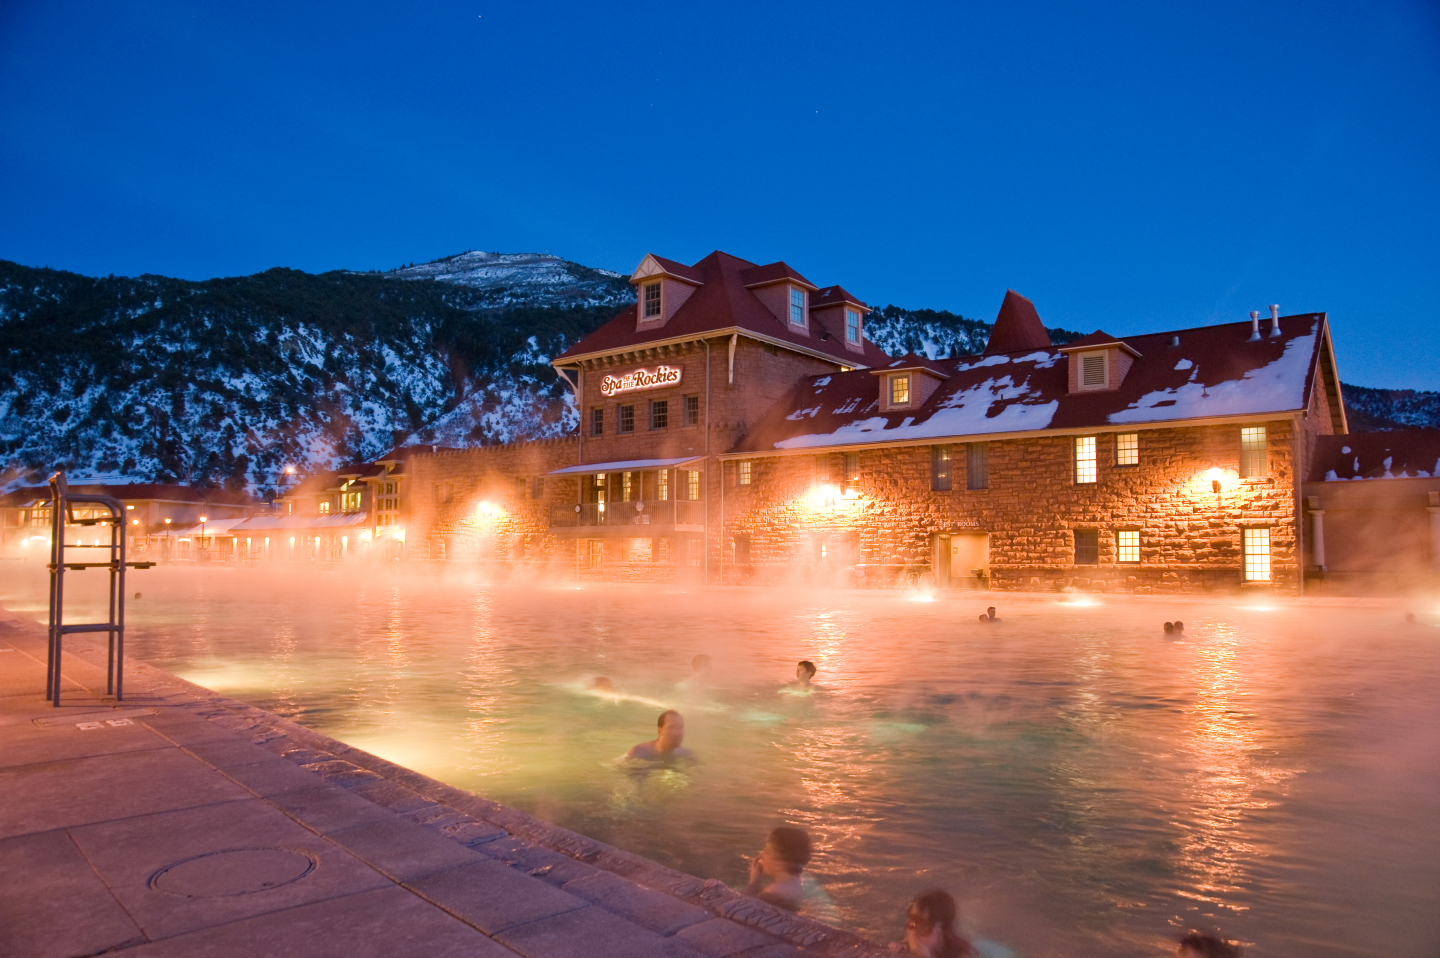 Glenwood hot springs discount coupons